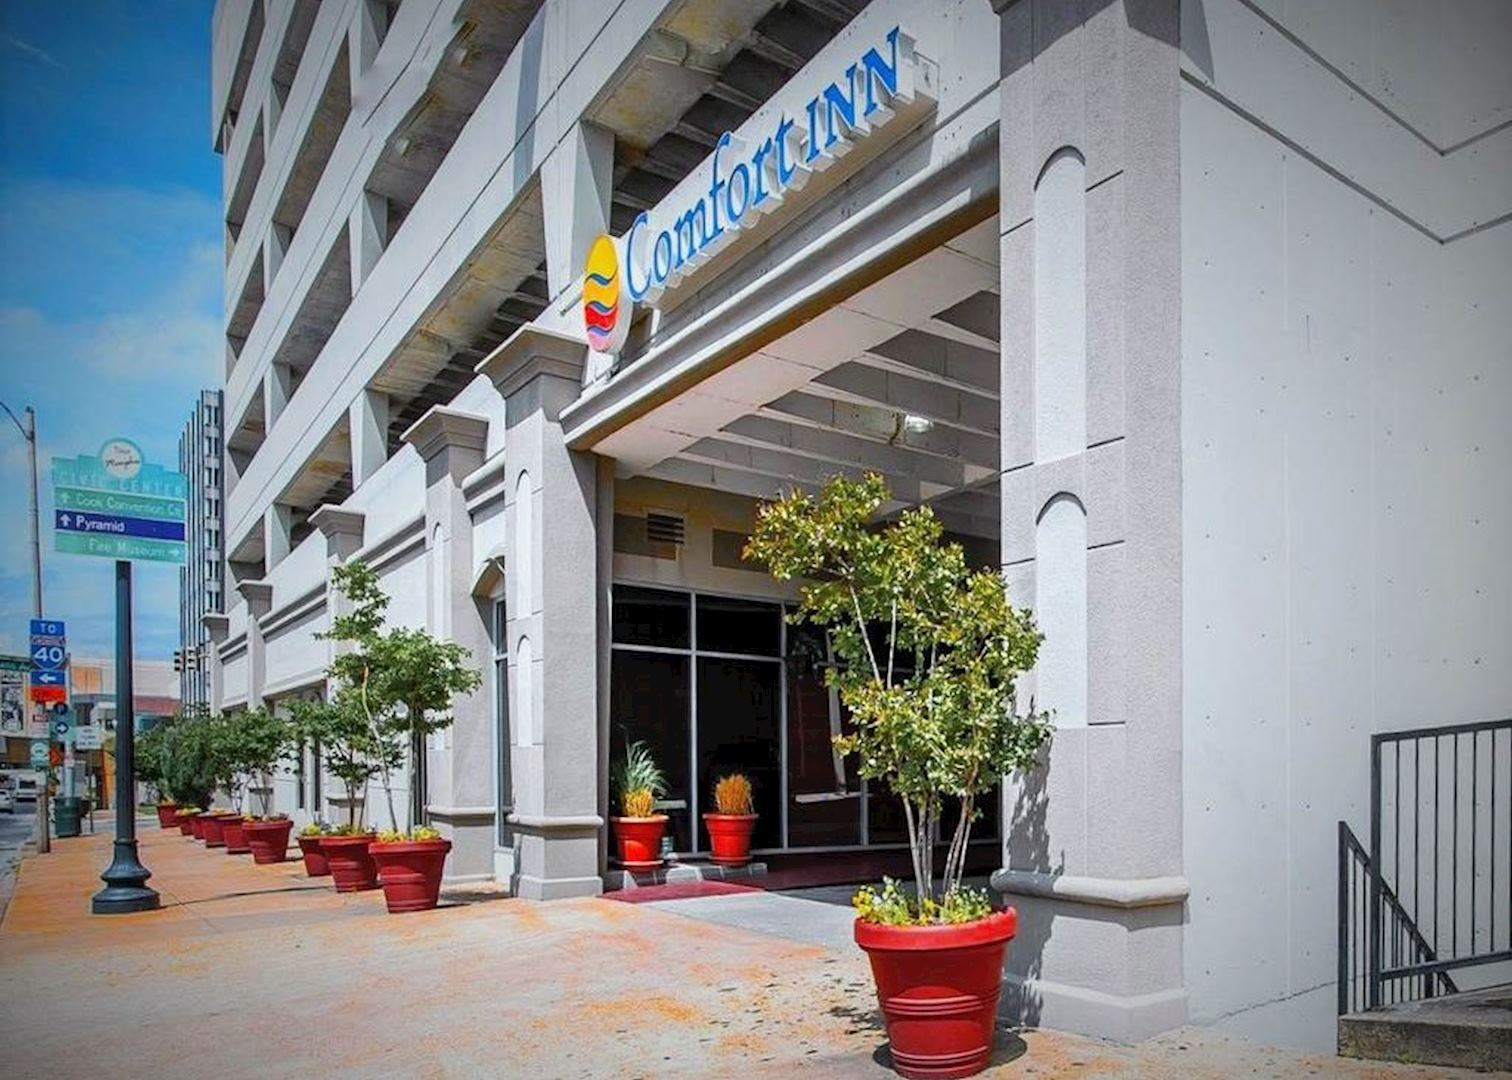 Comfort inn downtown hotels in memphis audley travel for Luxury hotels in memphis tn